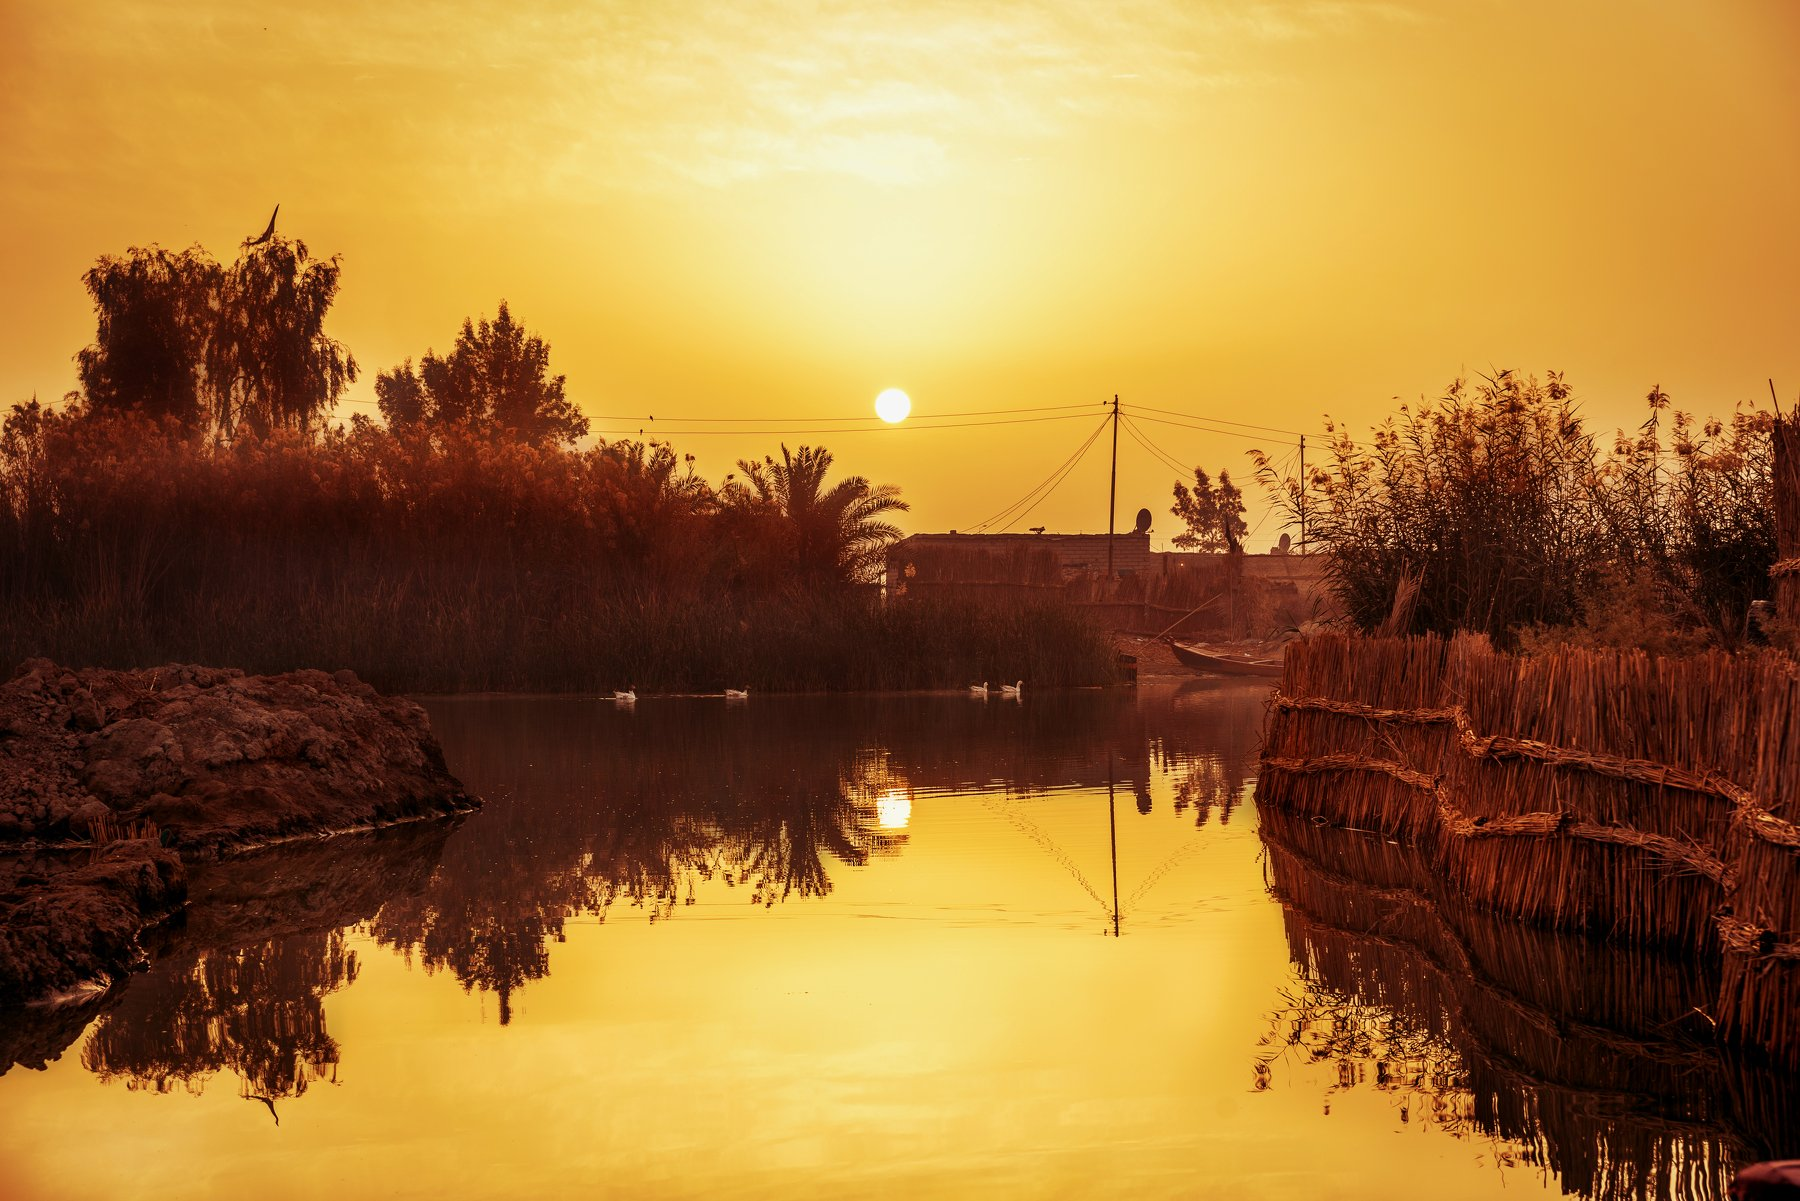 Colors,Marshes,Iraq,trees,Water, najem hussein